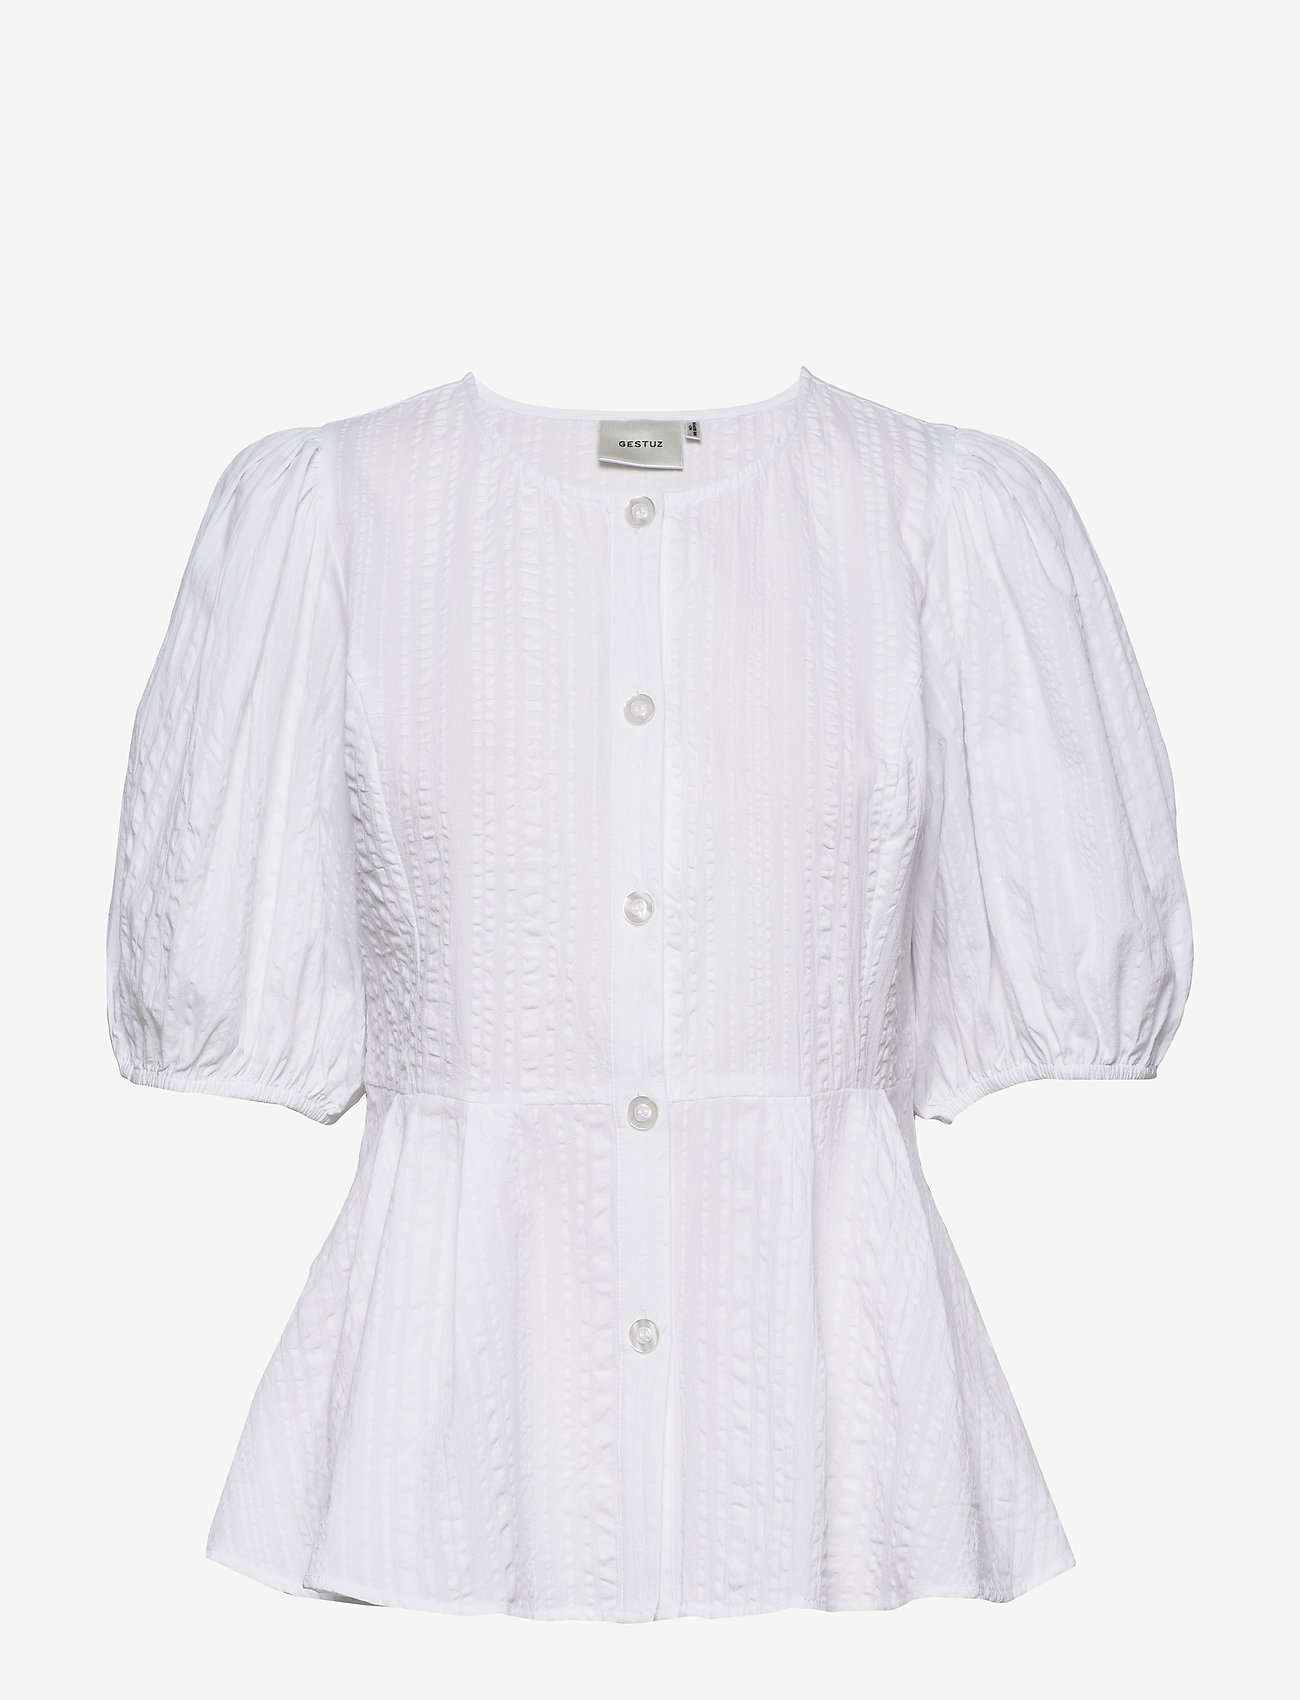 Gestuz - HevinGZ blouse HS20 - short-sleeved blouses - bright white - 1